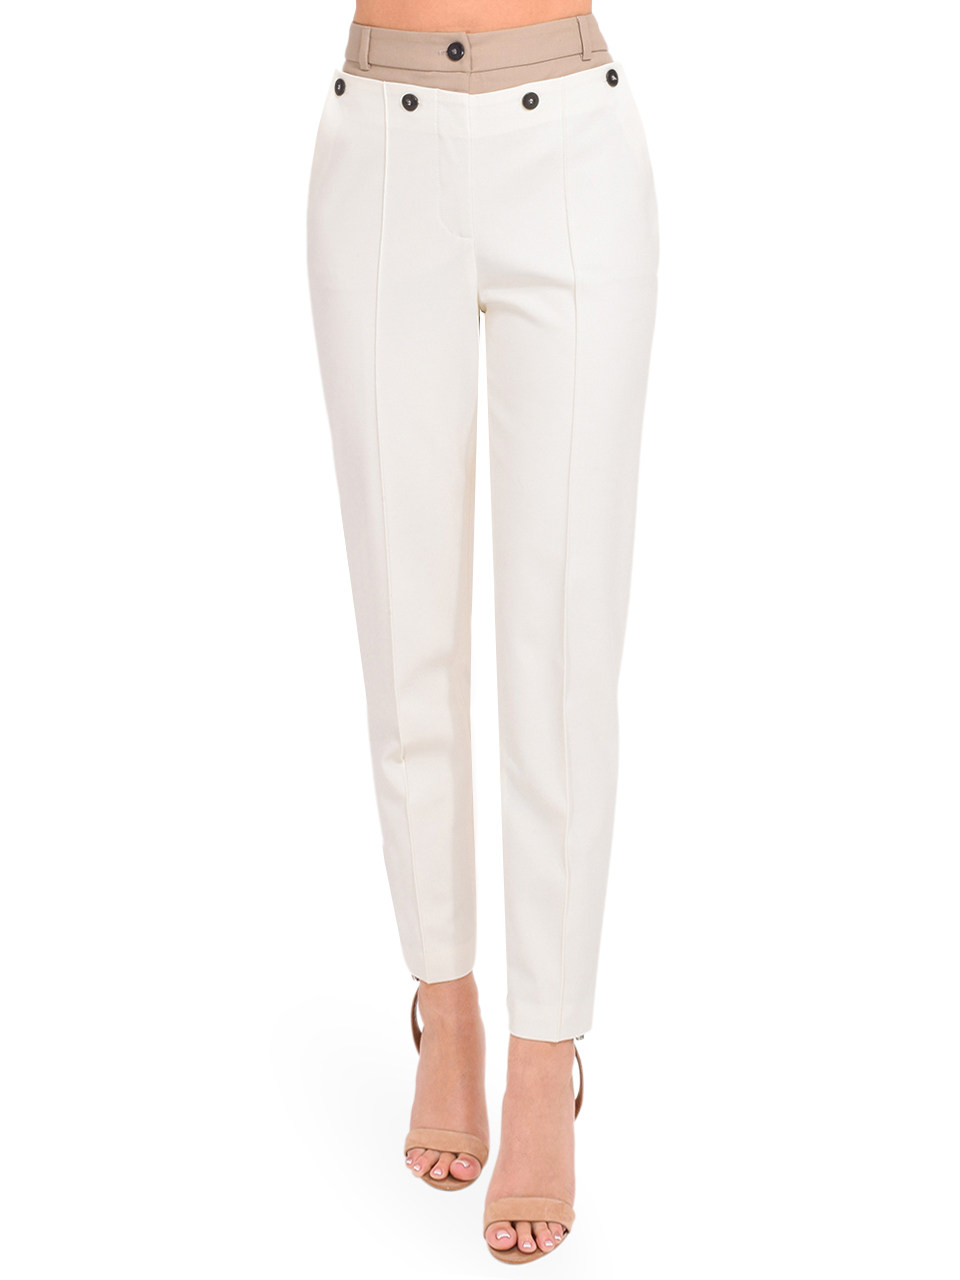 Jonathan Simkhai Spencer Double Front Waist Pant in Papyrus Tan Front View